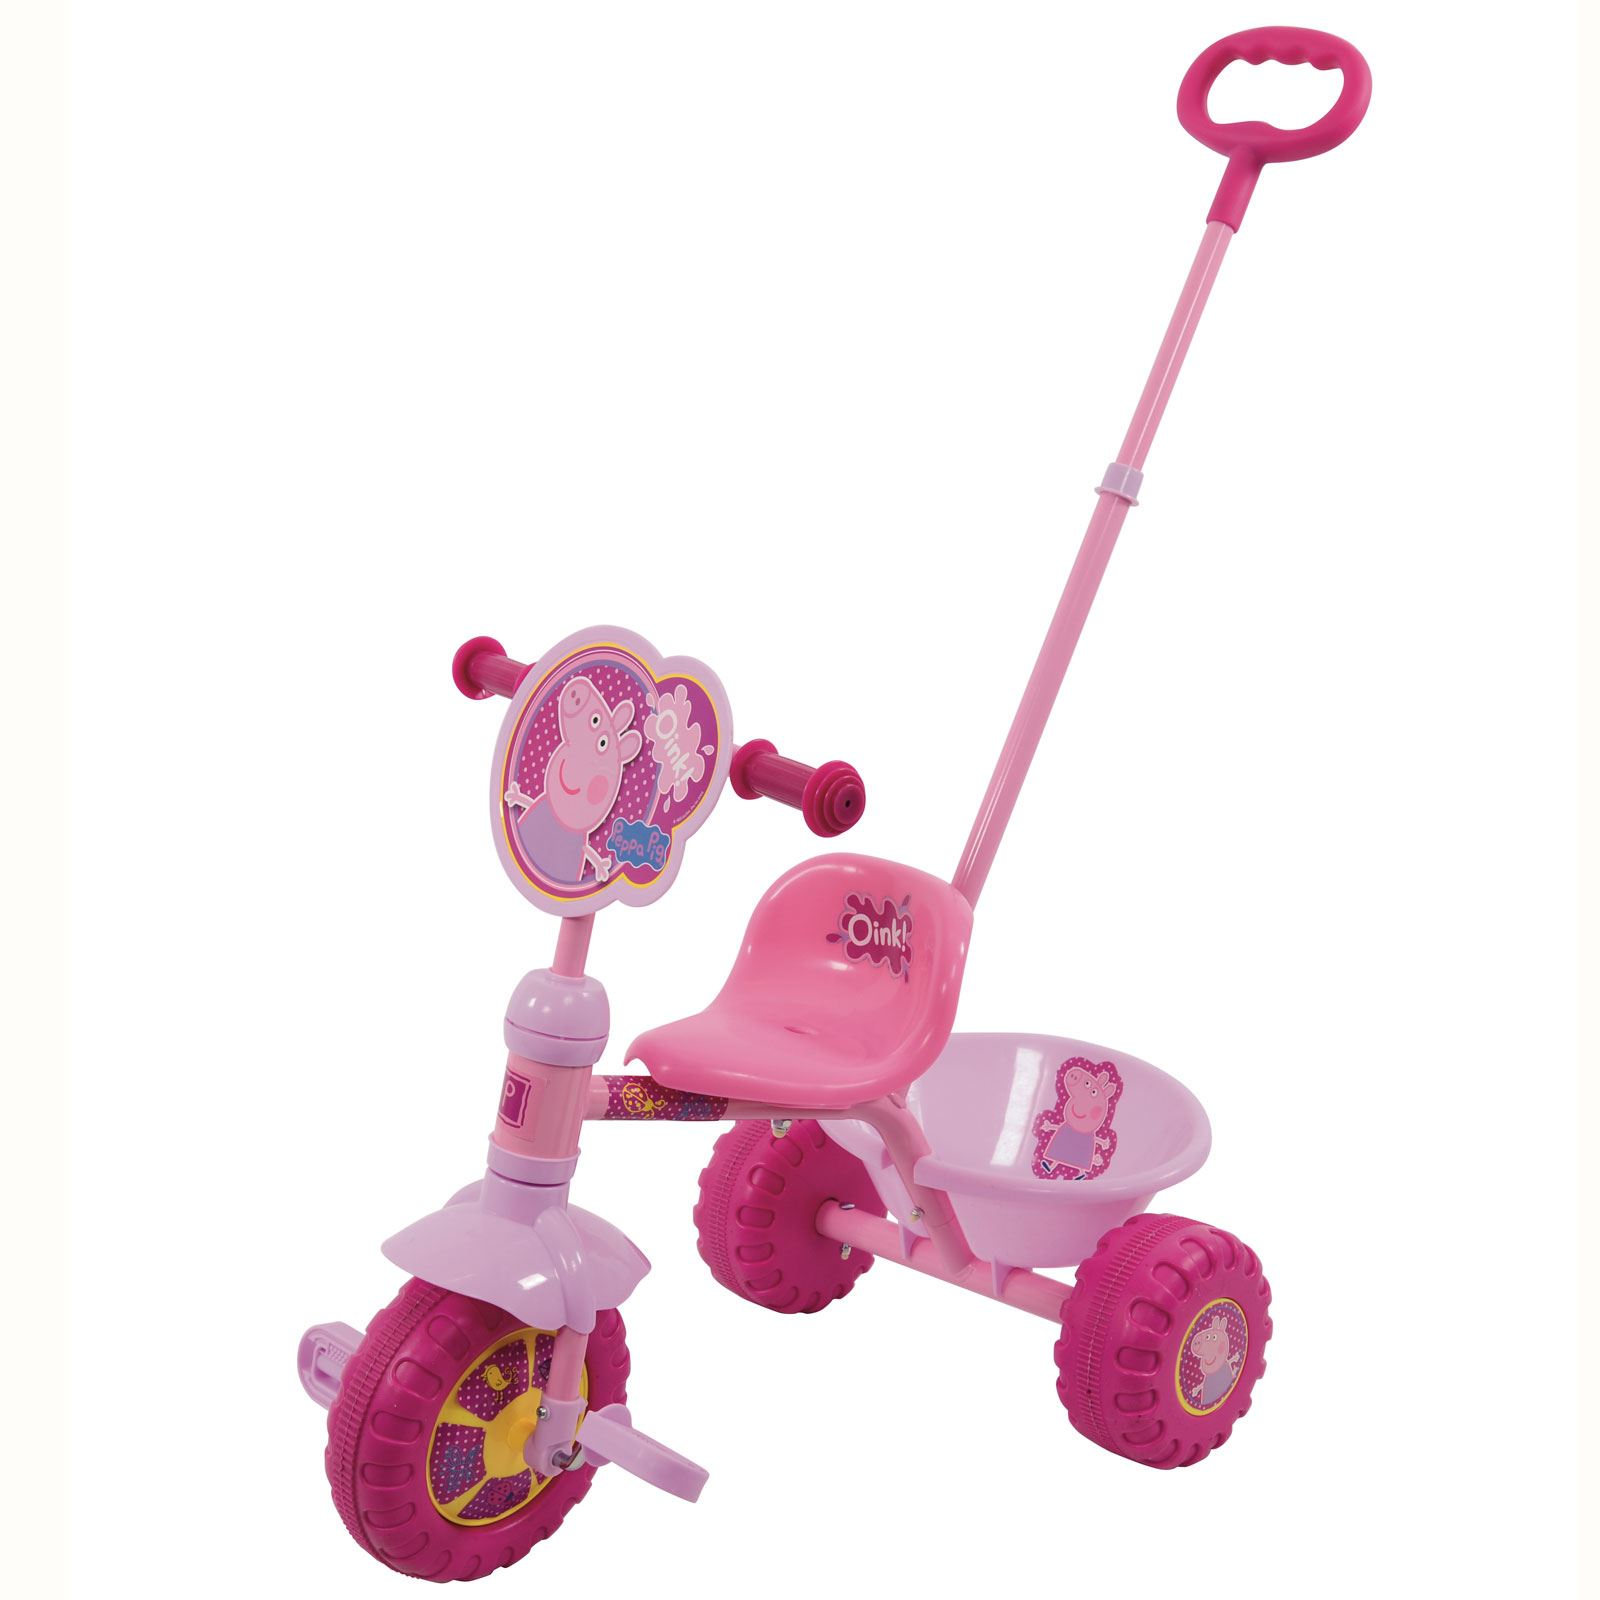 Peppa Pig Outdoor Range Choose From My First Ride On Trike